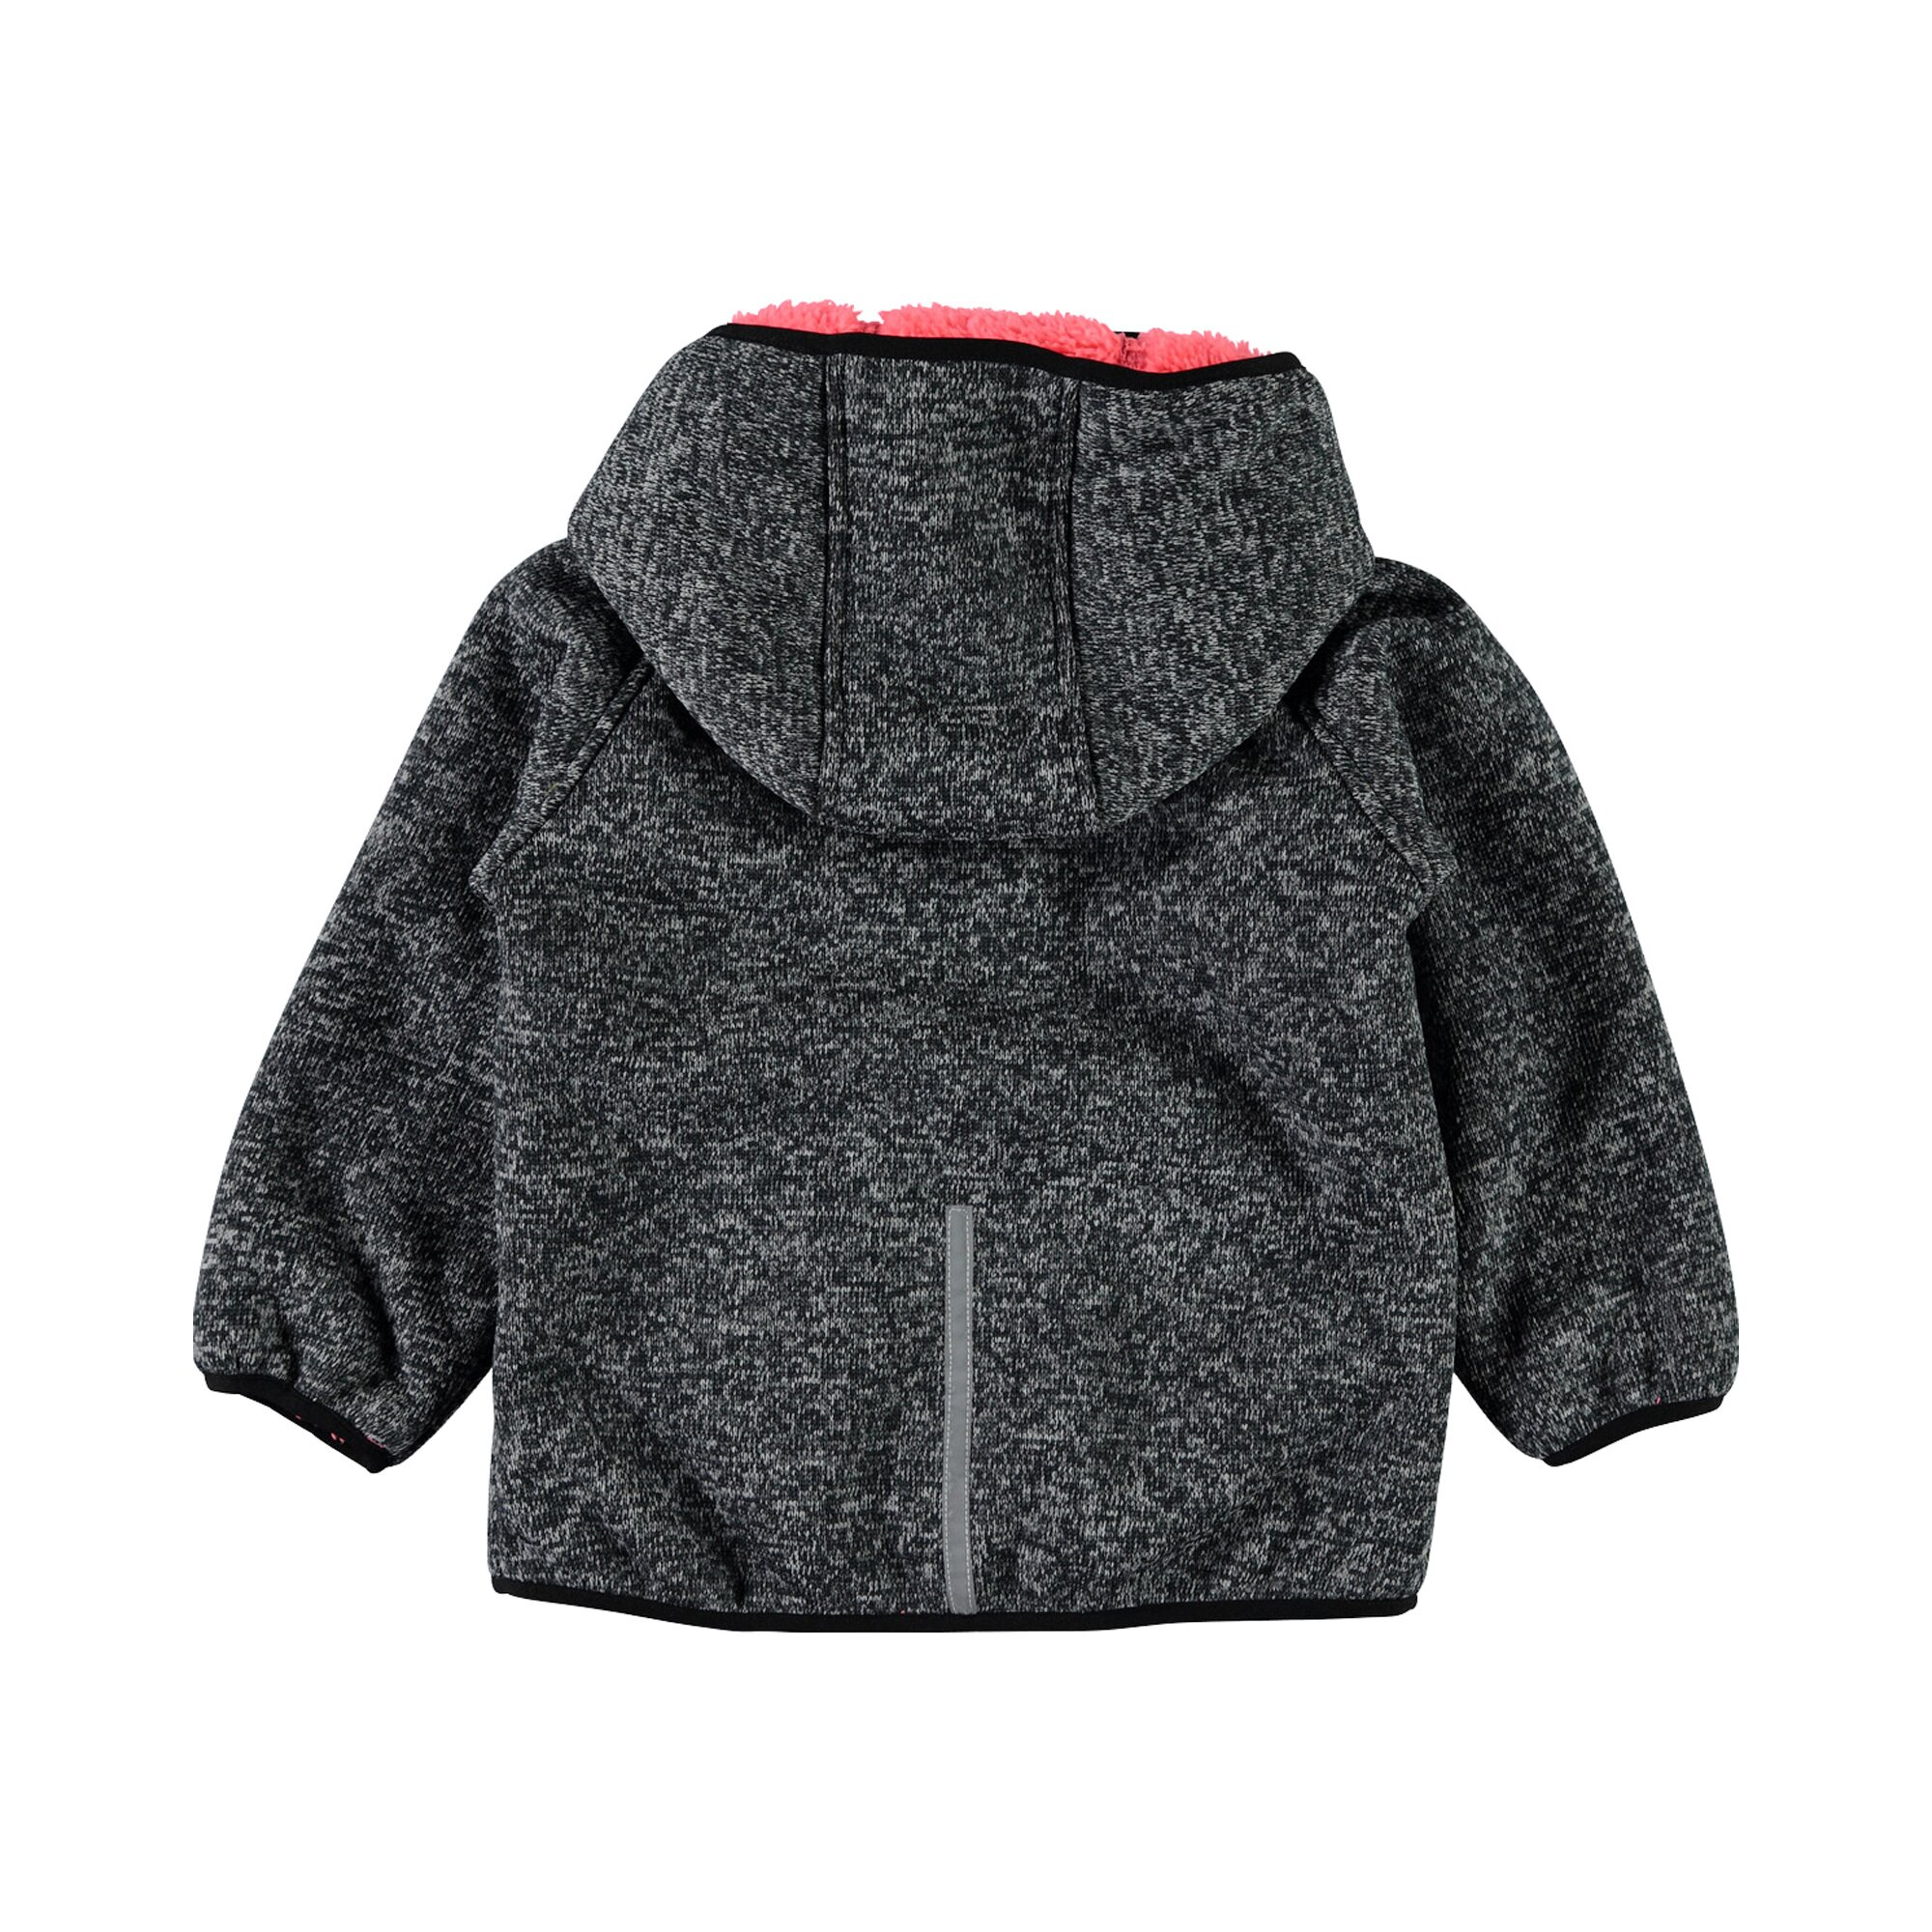 name-it-softshelljacke-strickoptik-mit-teddyfell, 16.39 EUR @ babywalz-de